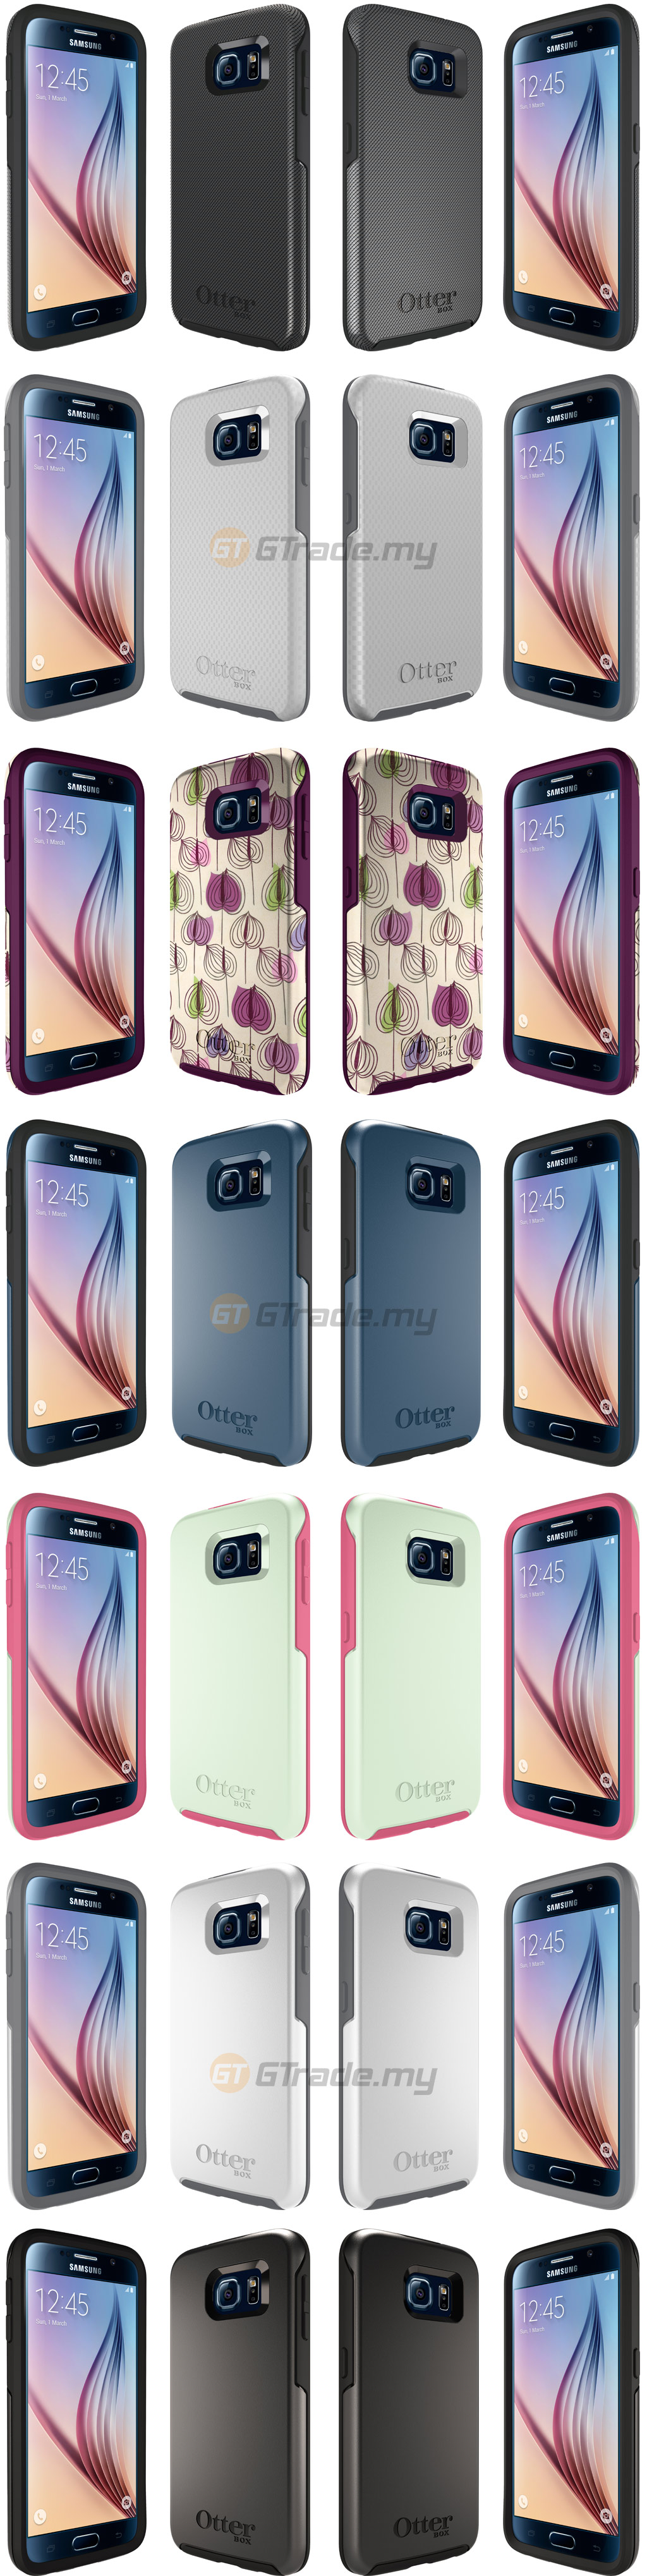 otterbox-symmetry-series-slim-stylish-shock-drop-protection-case-samsung-galaxy-s6-p